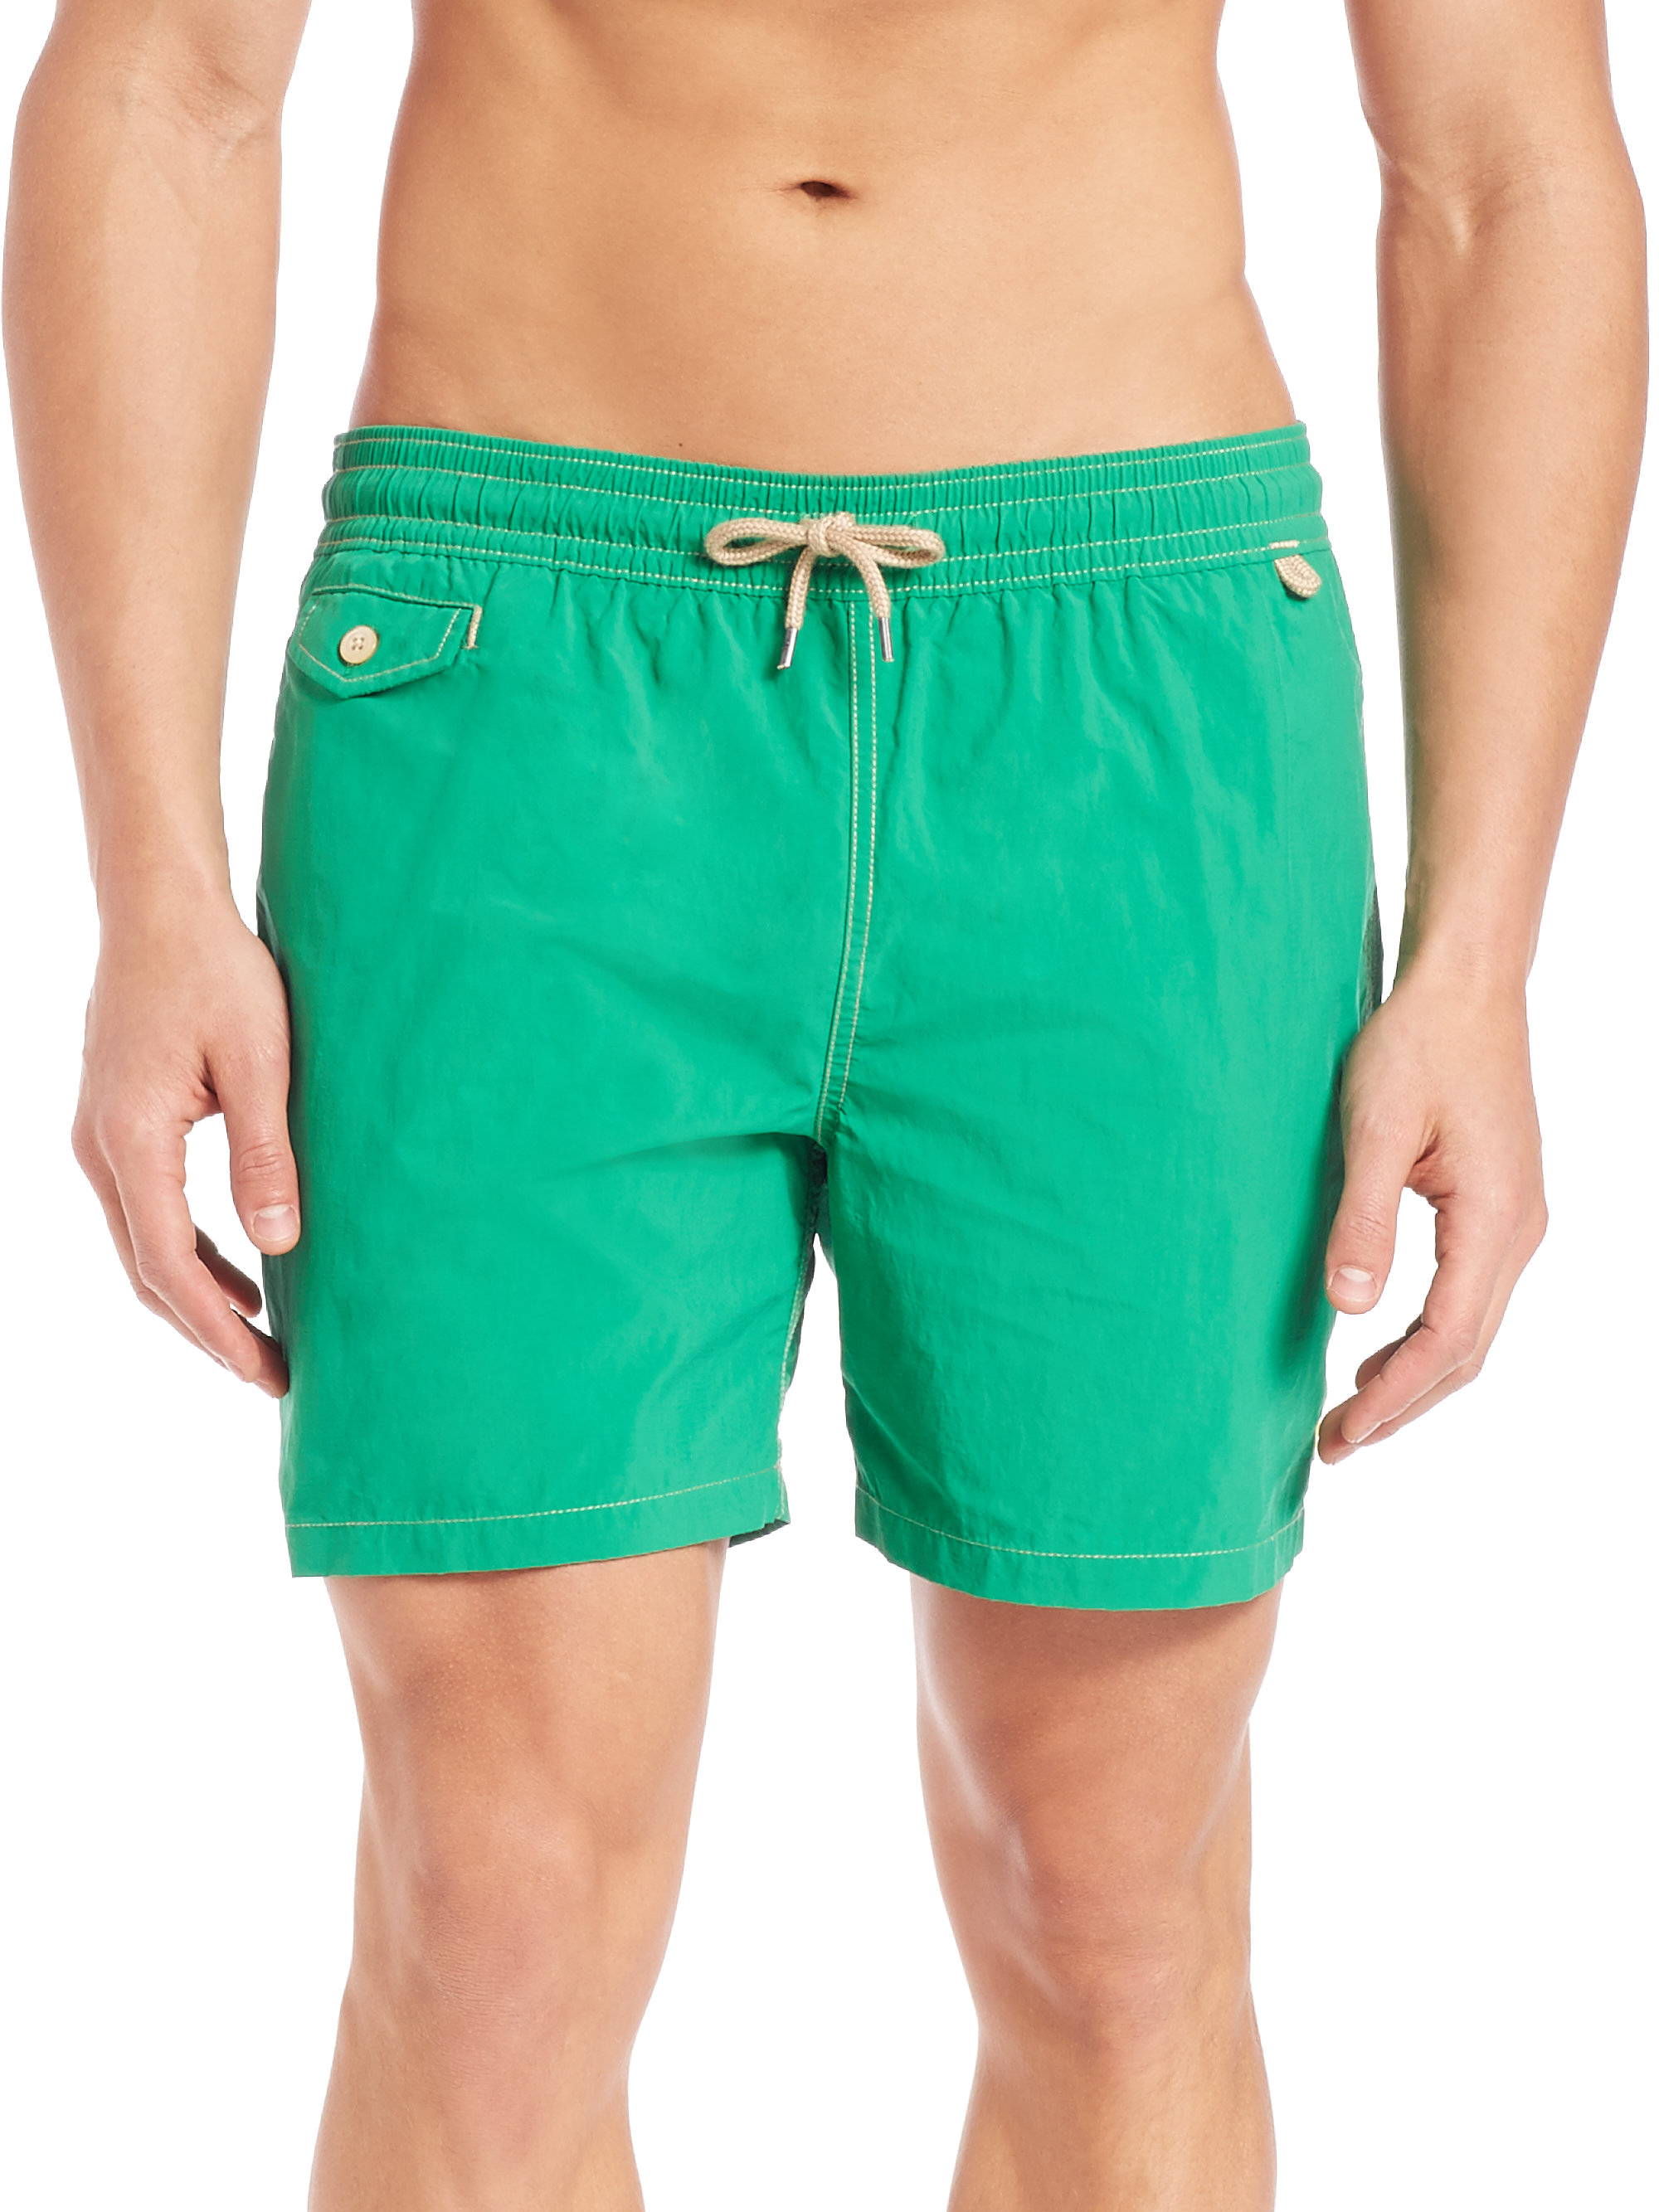 c97b828649 ... best price lyst polo ralph lauren traveler swim shorts in green for men  b3377 3f783